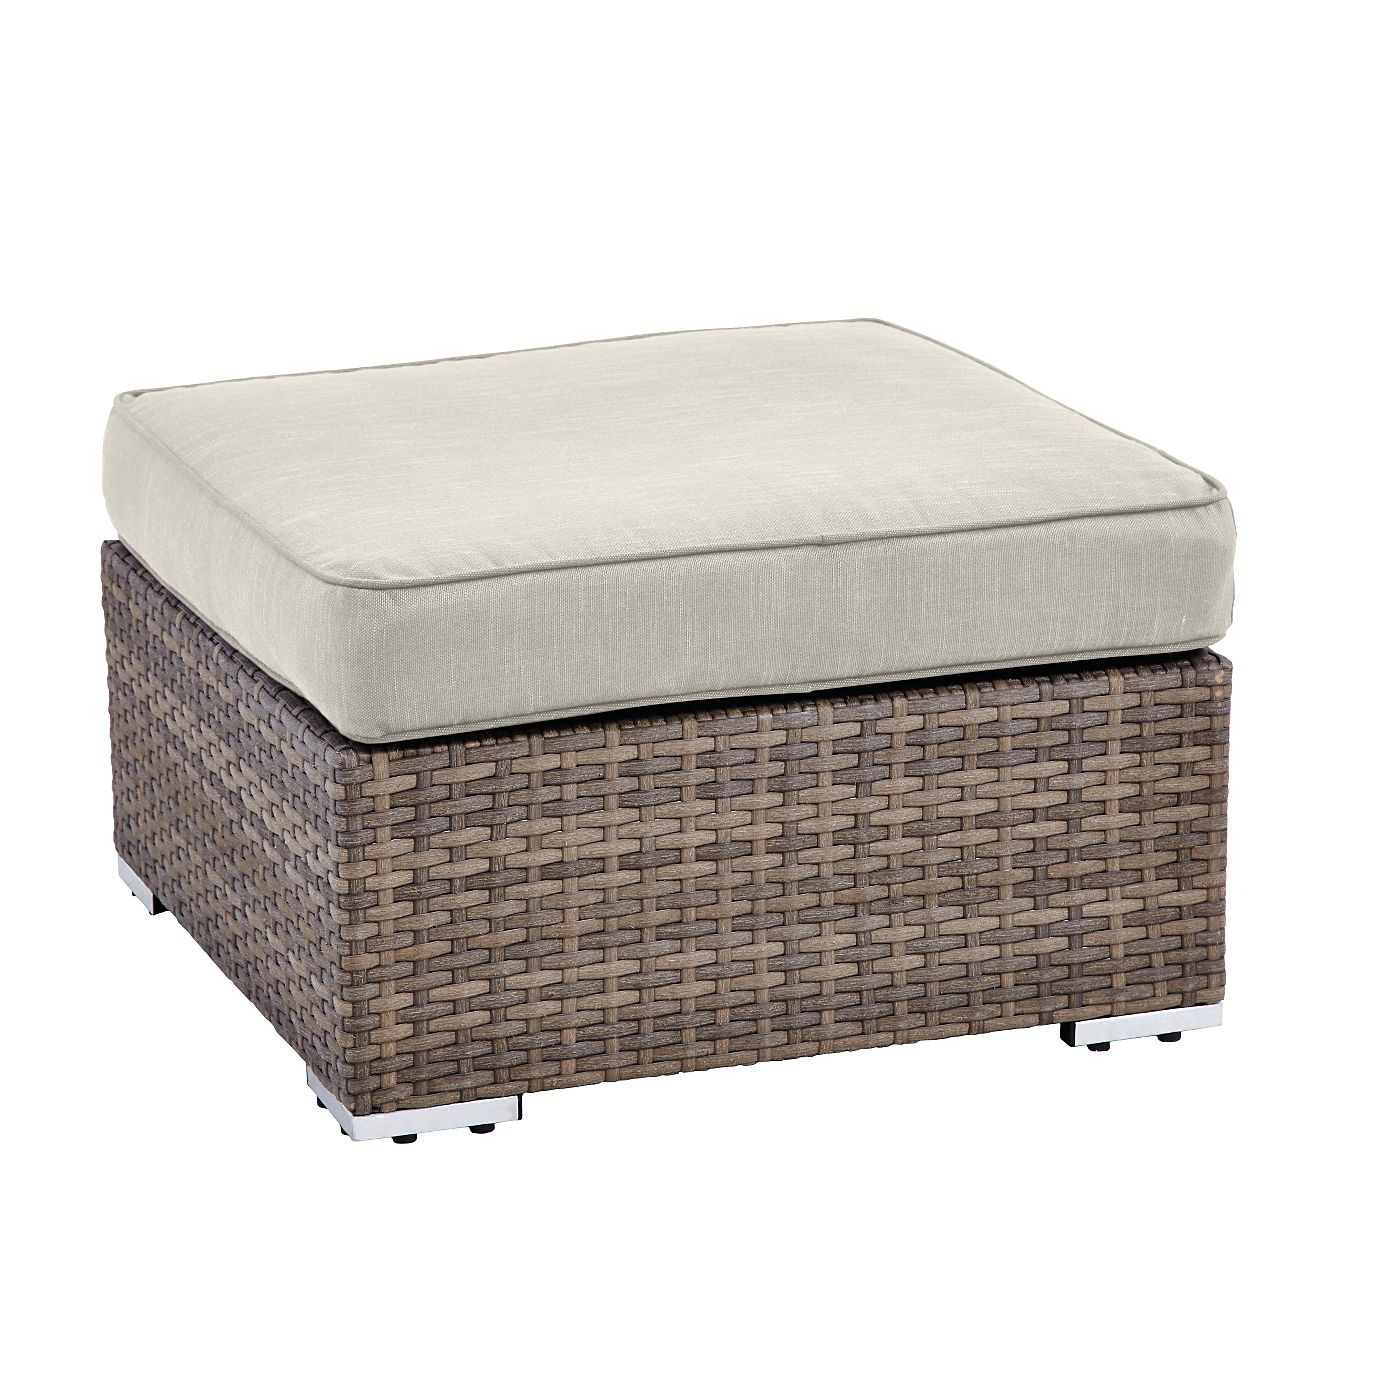 Borneo Ottoman Replacement Cushion Cover In Linen Cushions Covers Outdoor Cushions Patio Furniture Outdoor Furniture Cushions Patio Furniture Cushions